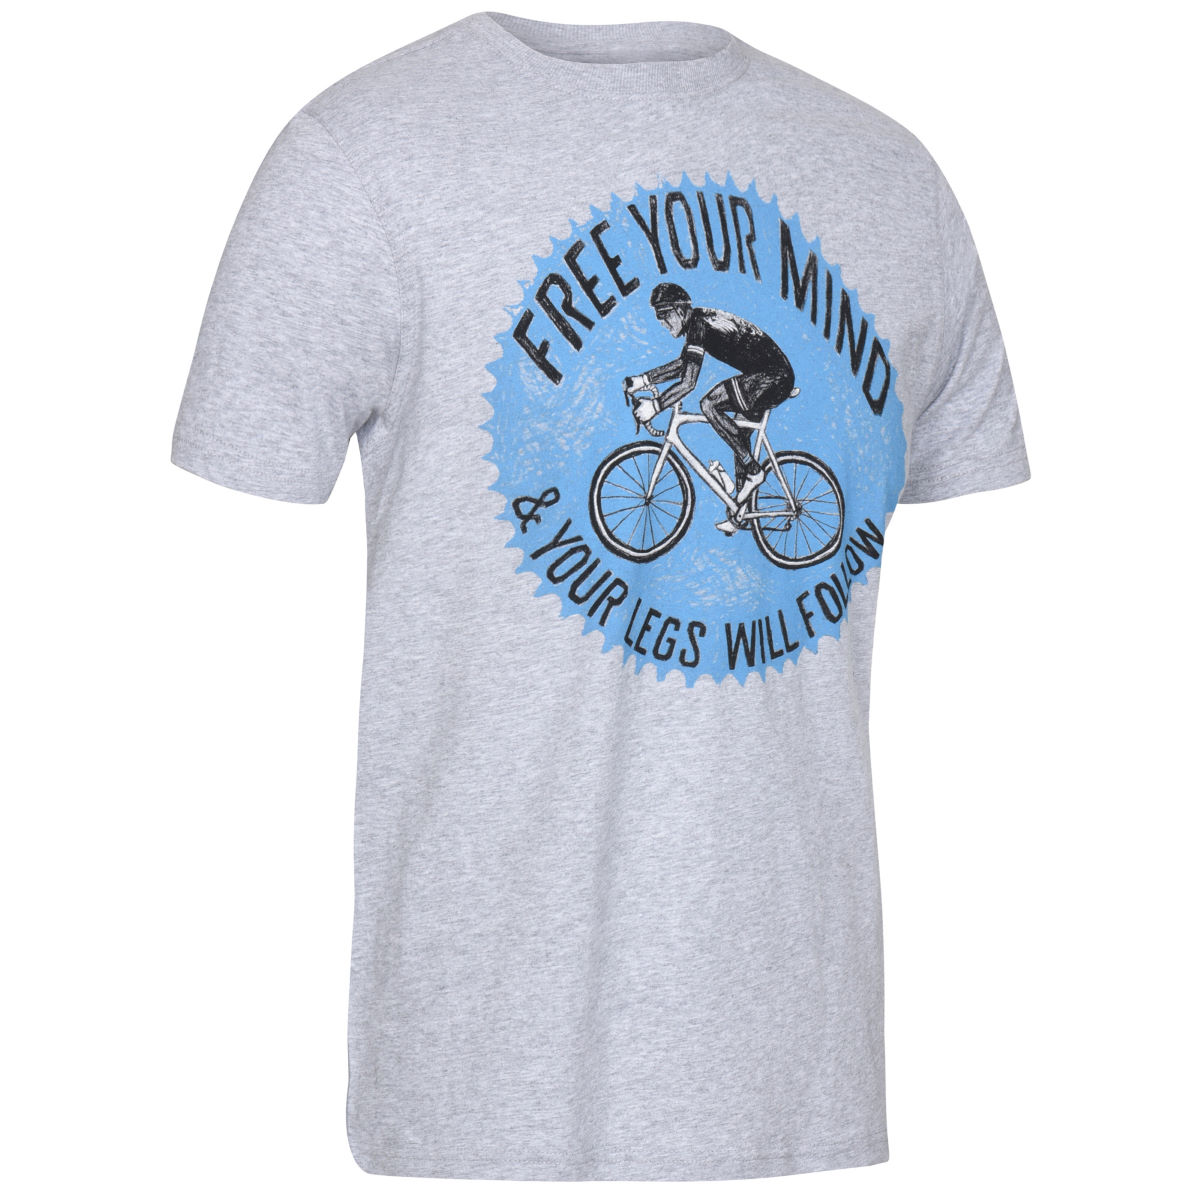 T-shirt Cycology Free your mind - S Gris T-shirts